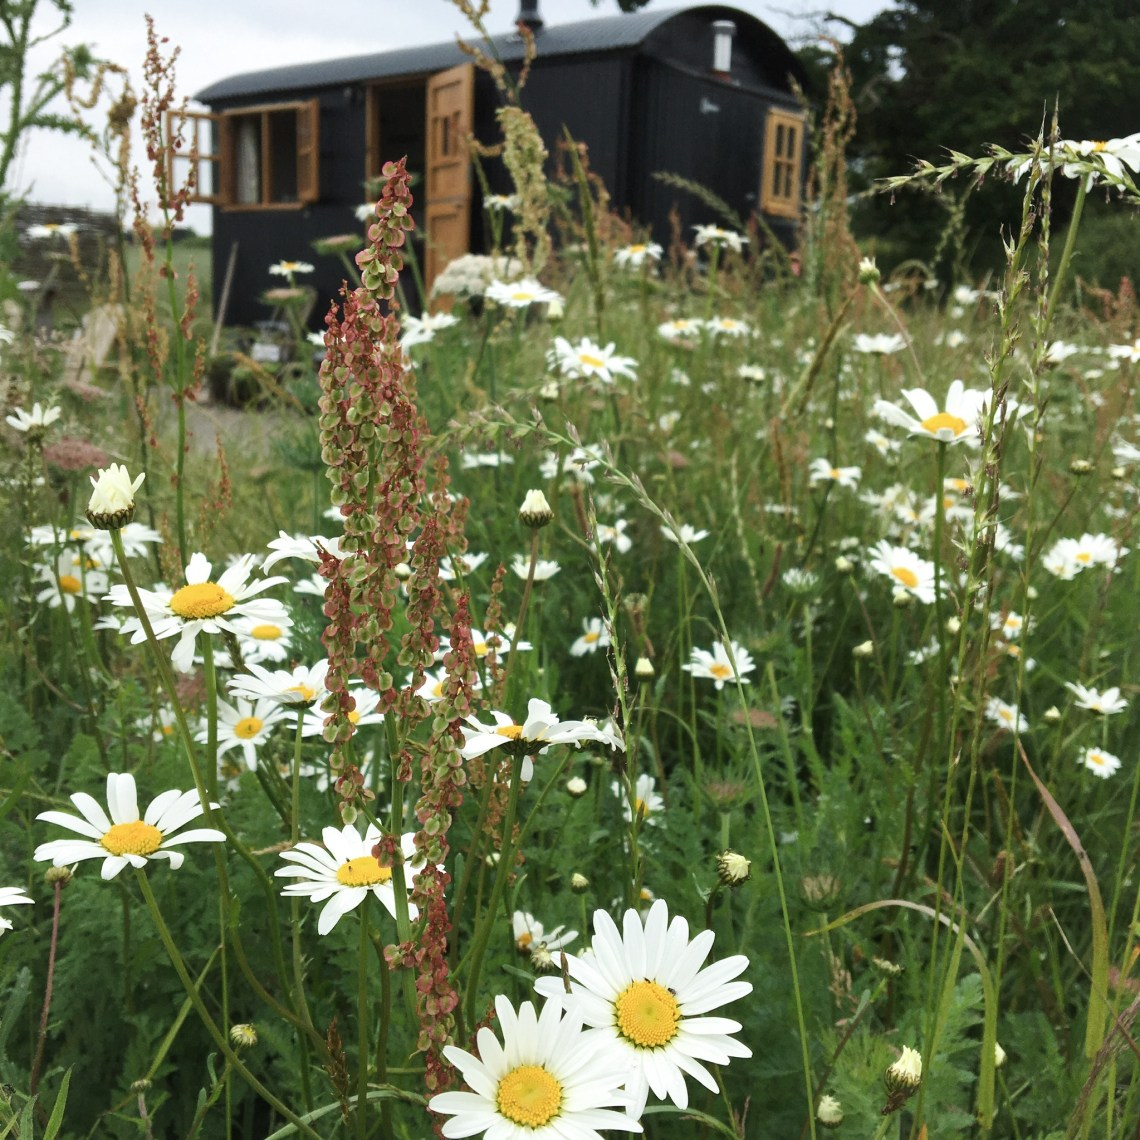 focused on Wild flower meadows with a black shepherd hut behind it